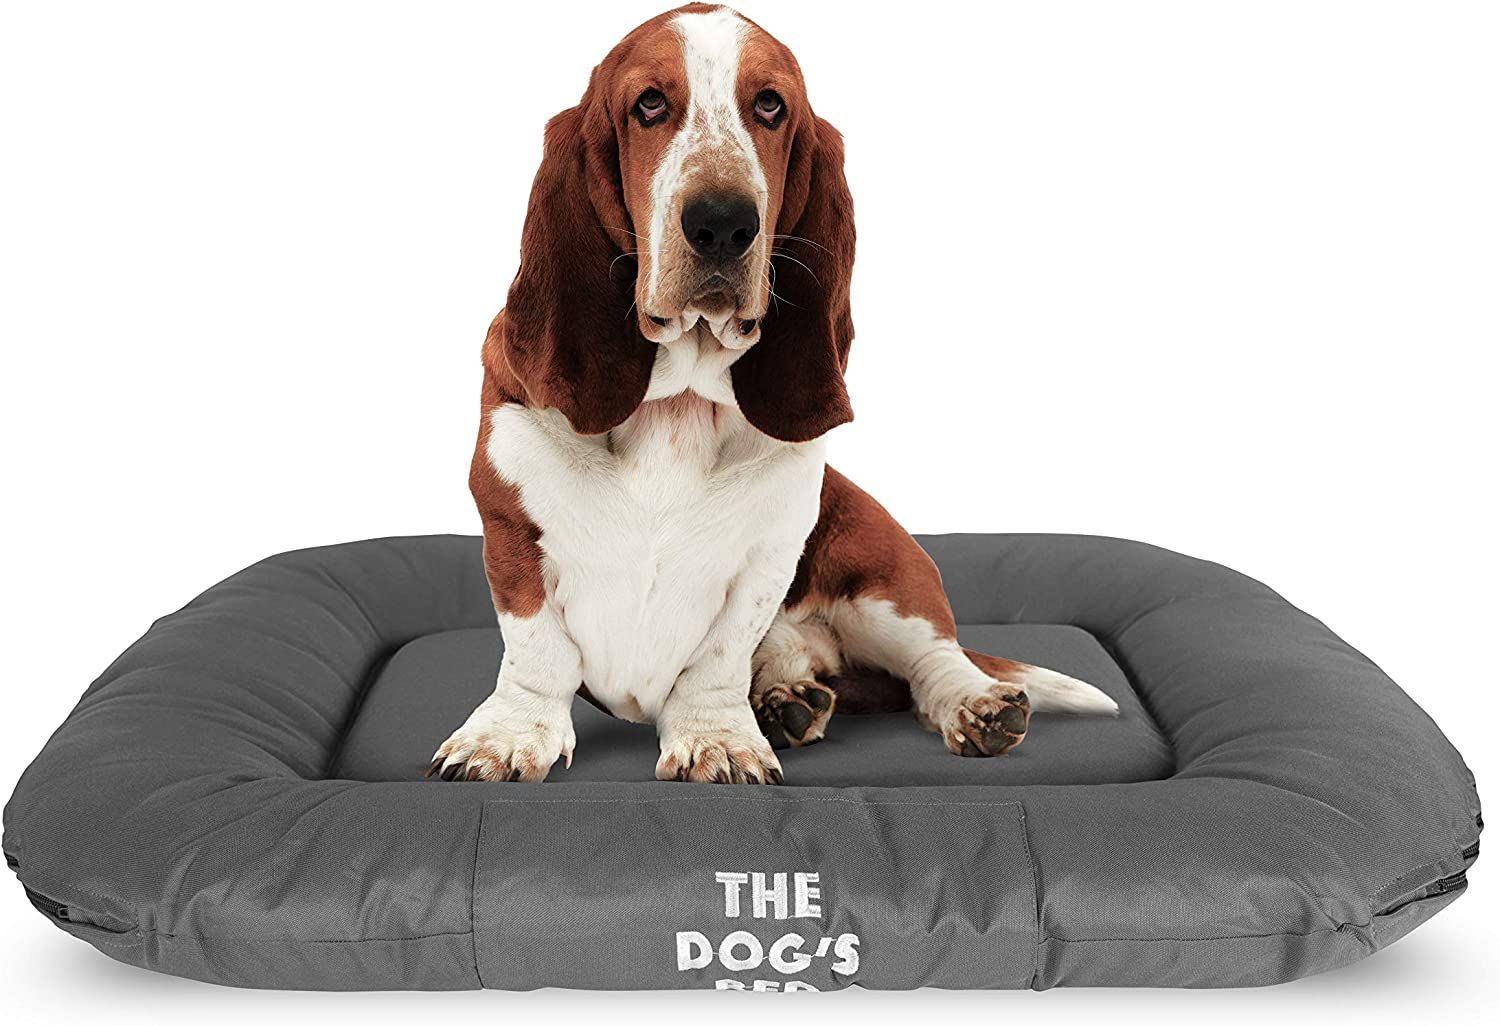 The Dog's Bed, Premium Waterproof Dog Bed, M to XXL Durable Quality Grey Oxford Fabric, YKK Zippers, Washable Reversible Cover, Dog Beds for Home Car Crate & Outside, Puppy & All Pet Comfort